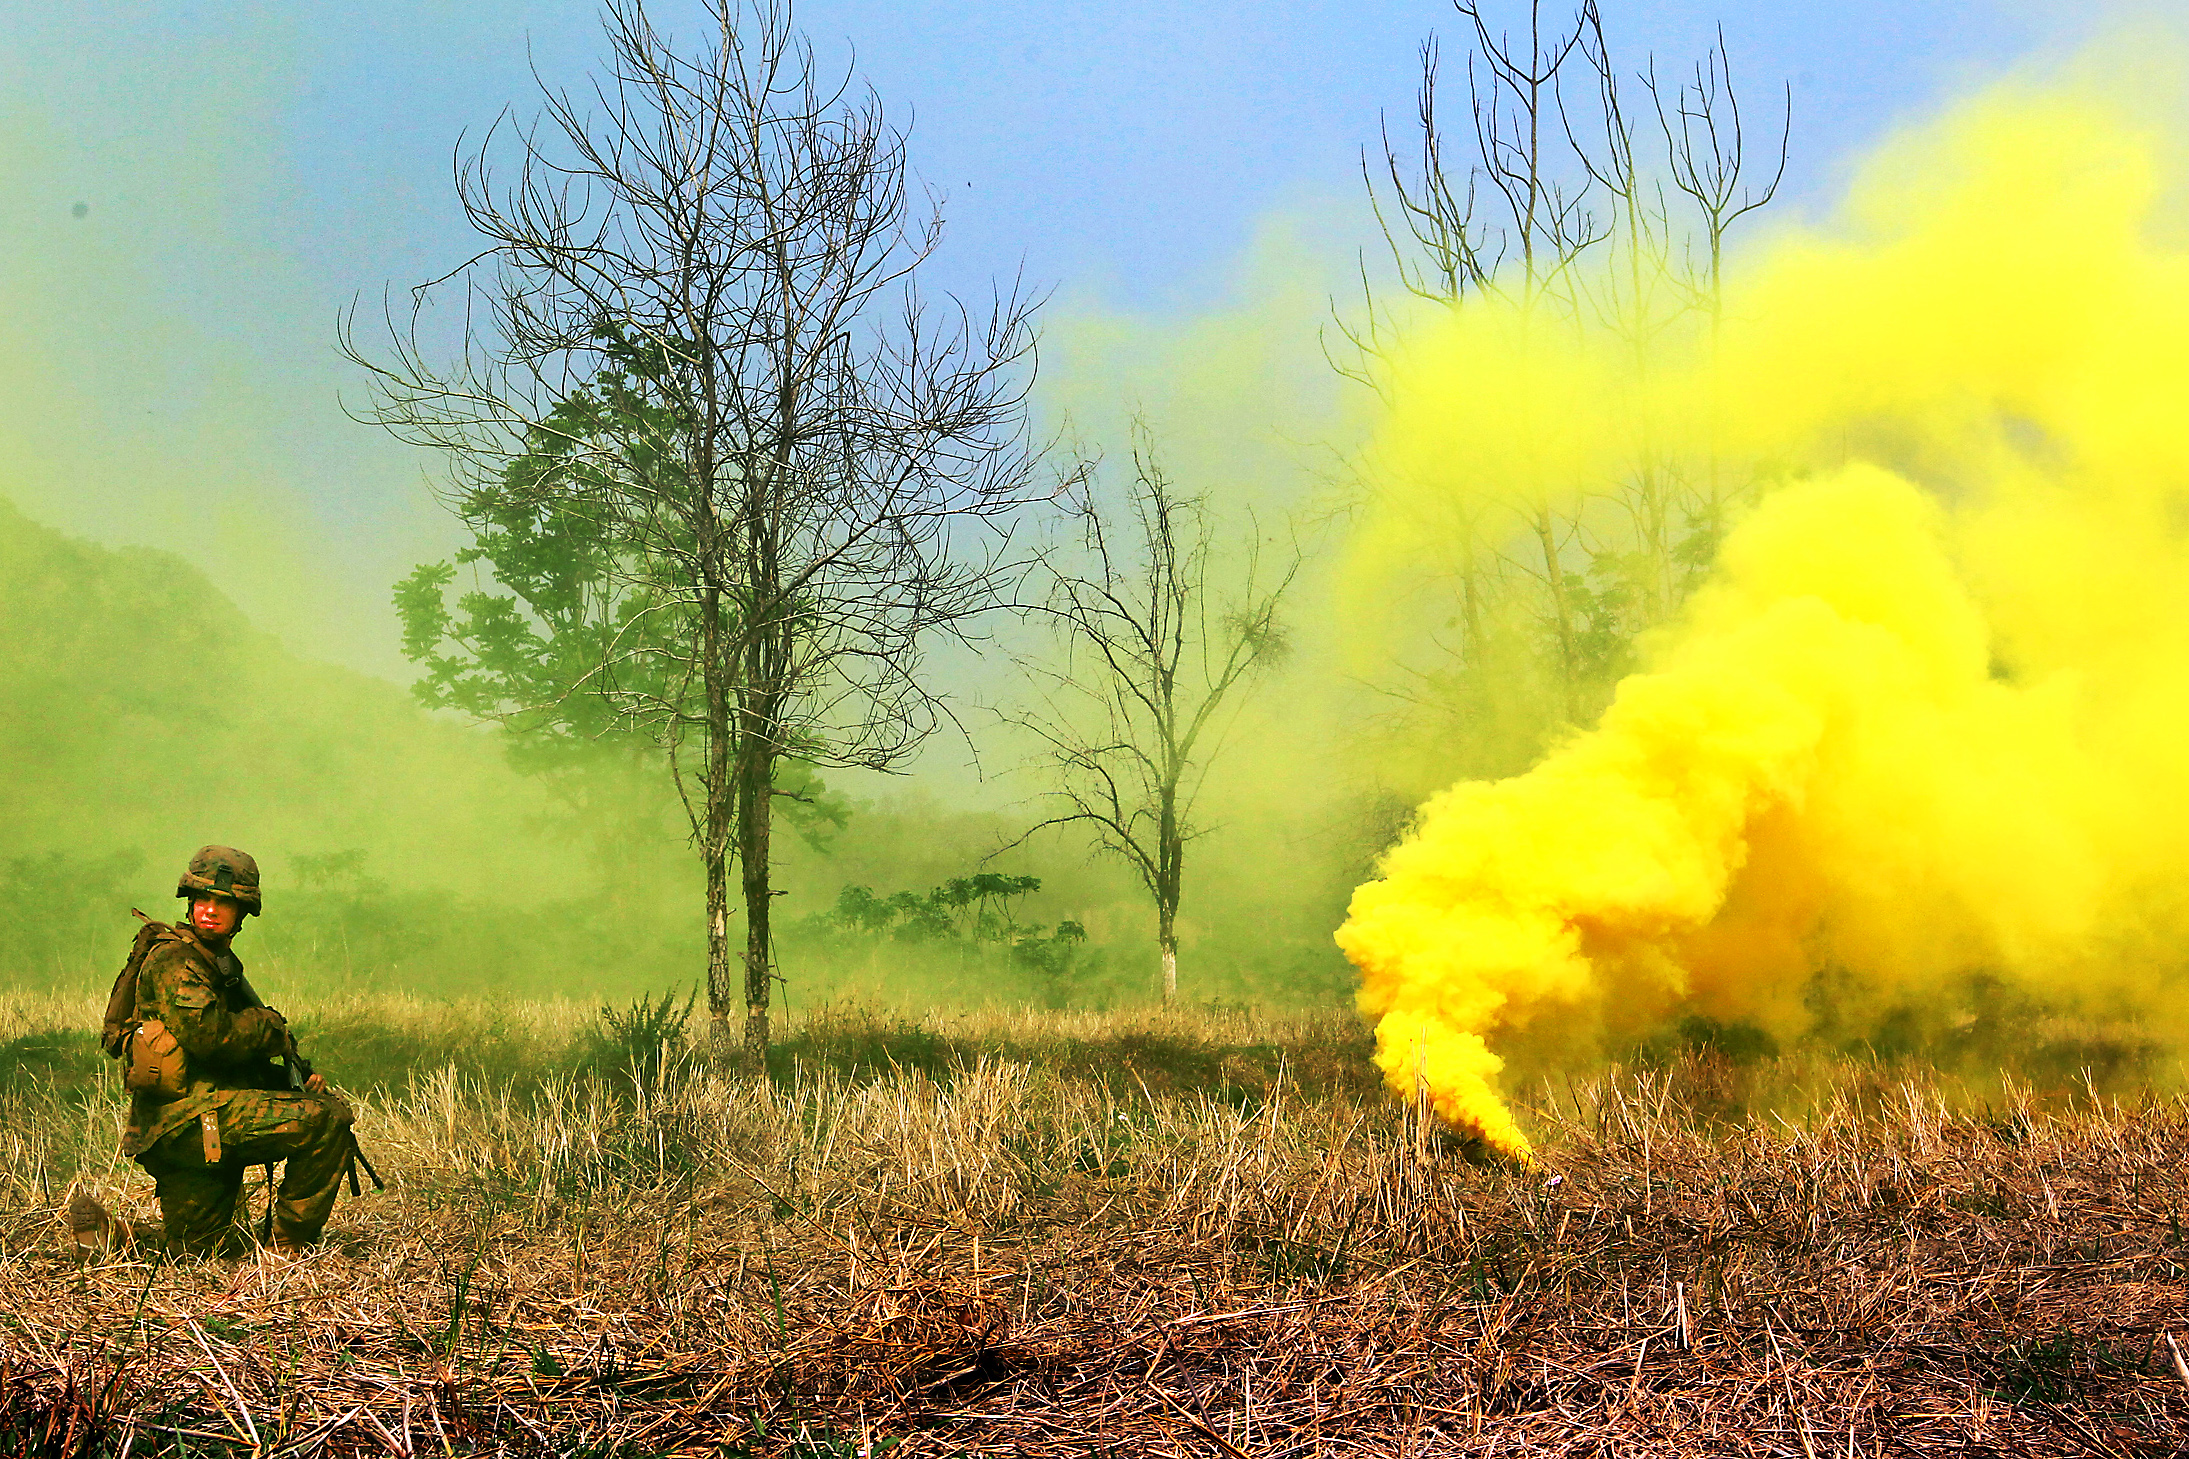 u s department of > photos > photo gallery a u s marine provides security as yellow smoke signals supporting forces during a combined arms exercise